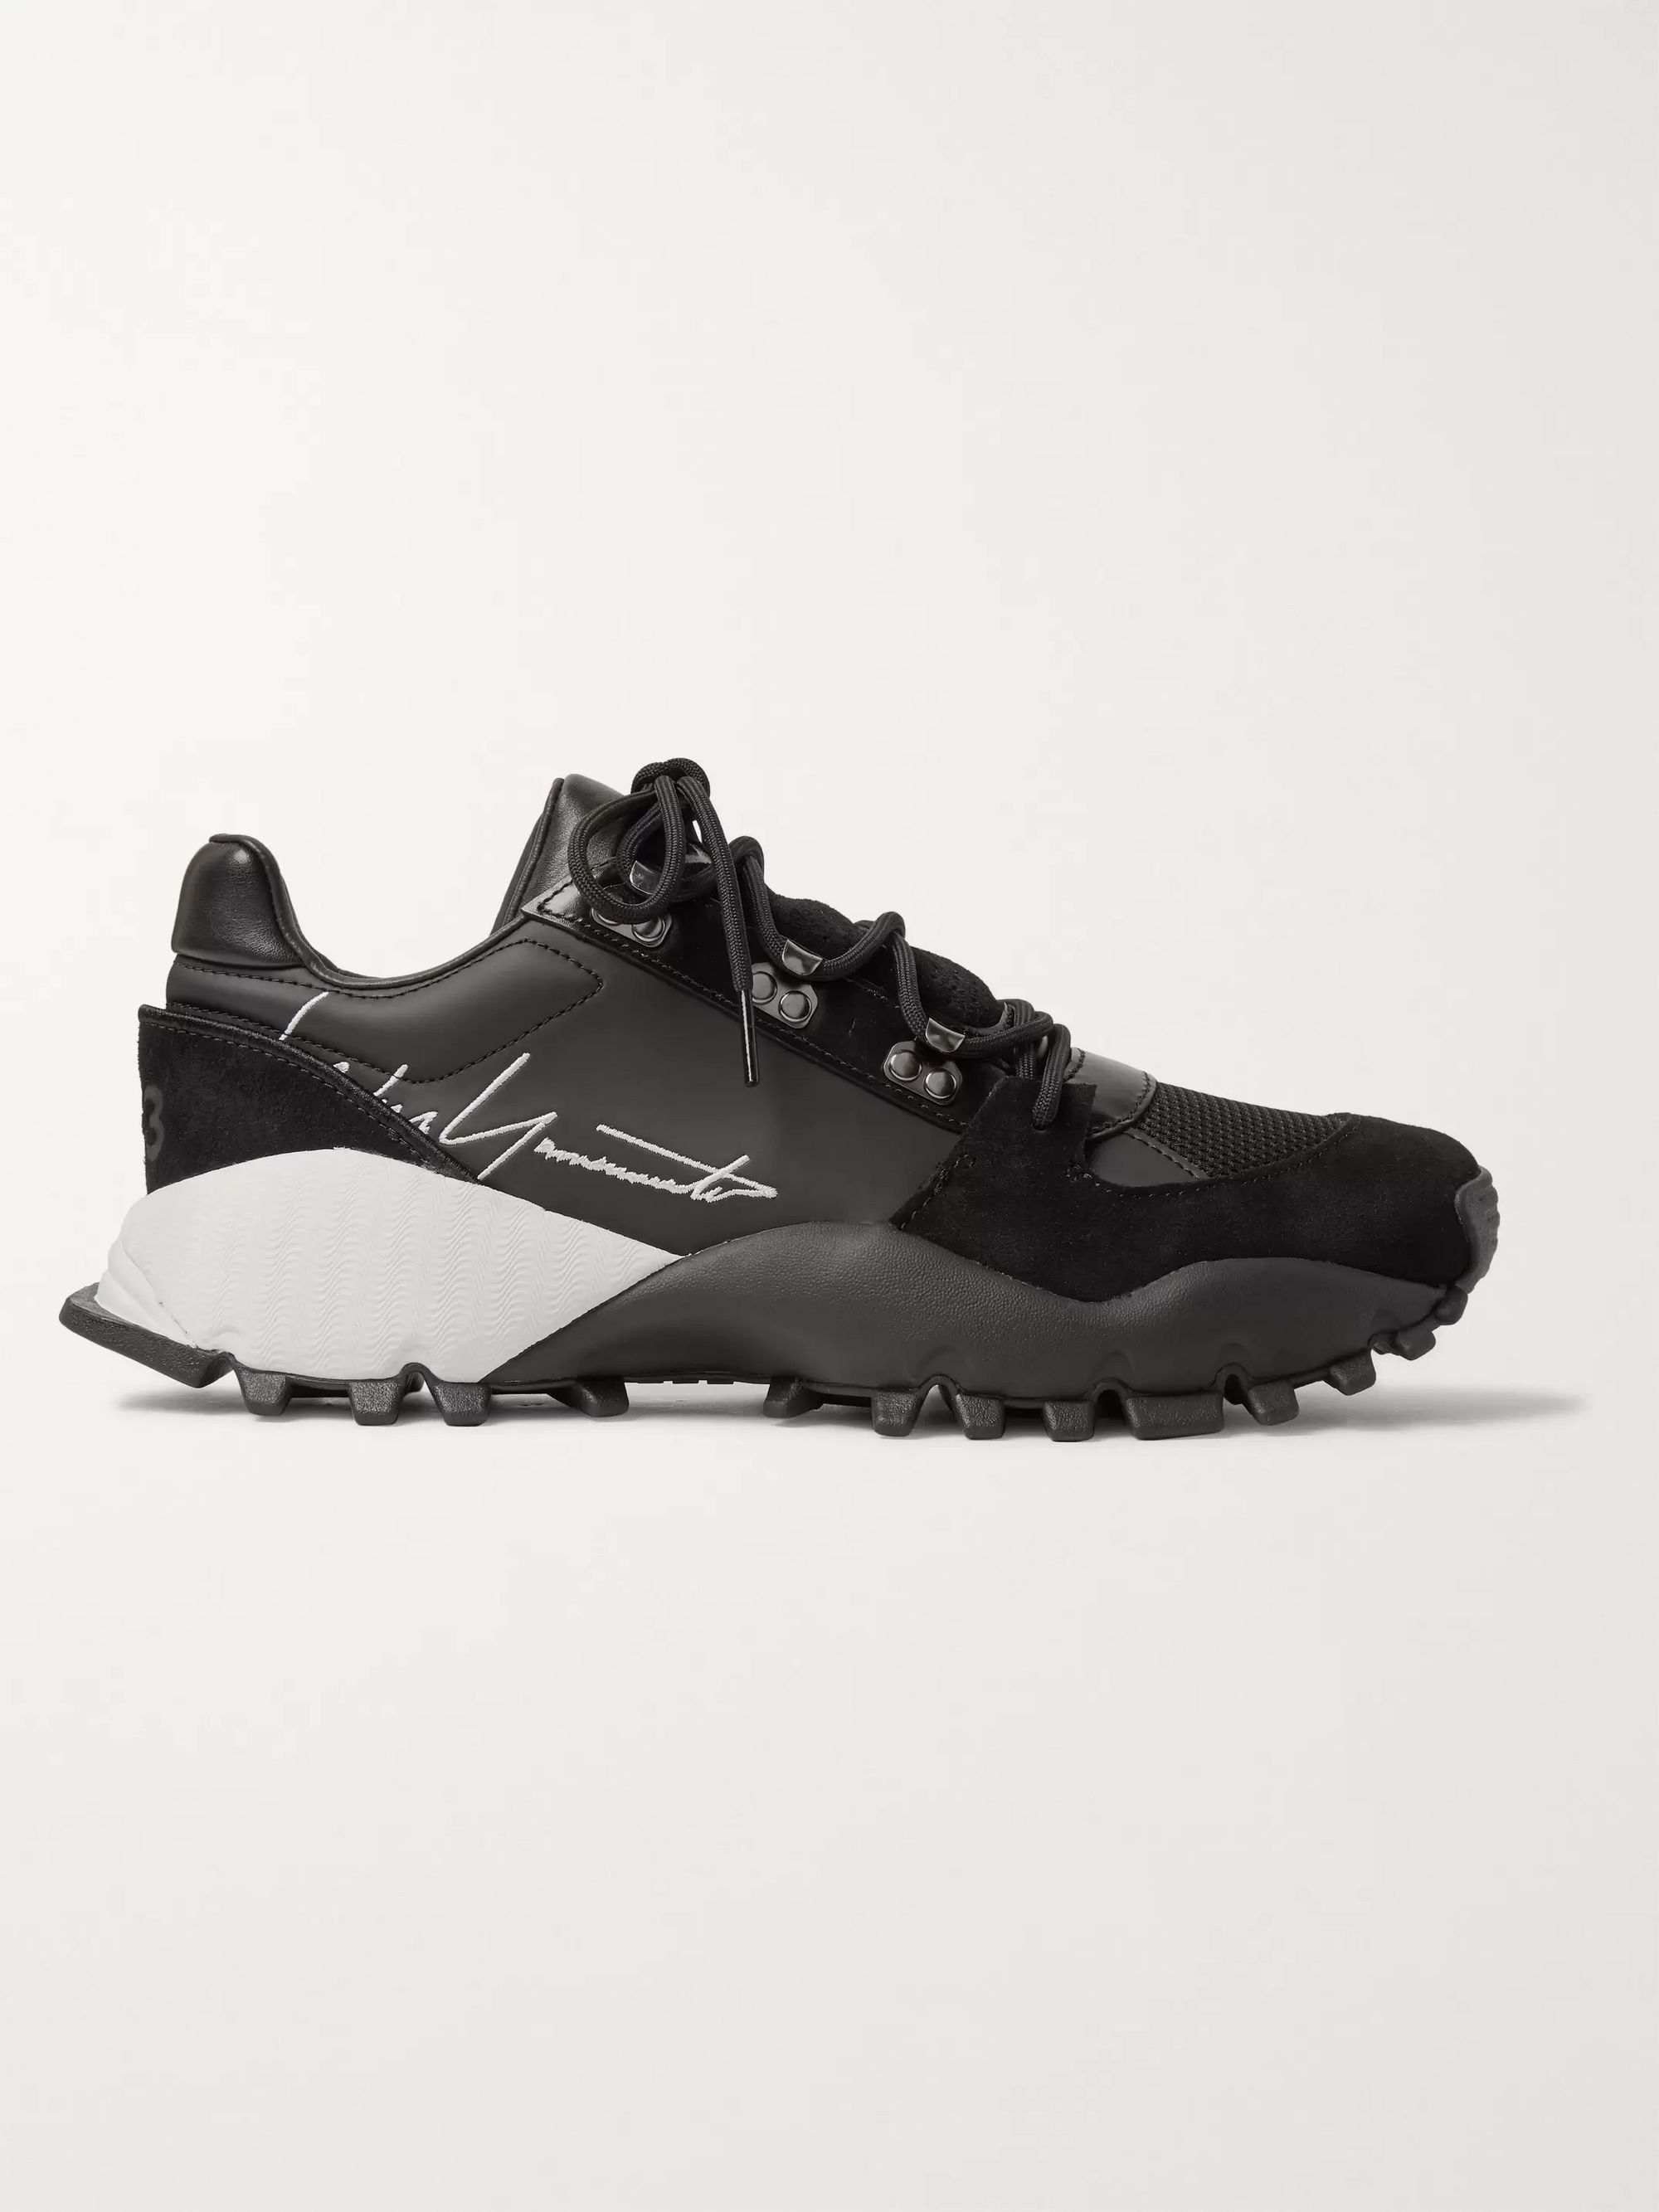 Y-3 Kyoi Trail Leather, Suede and Mesh Sneakers